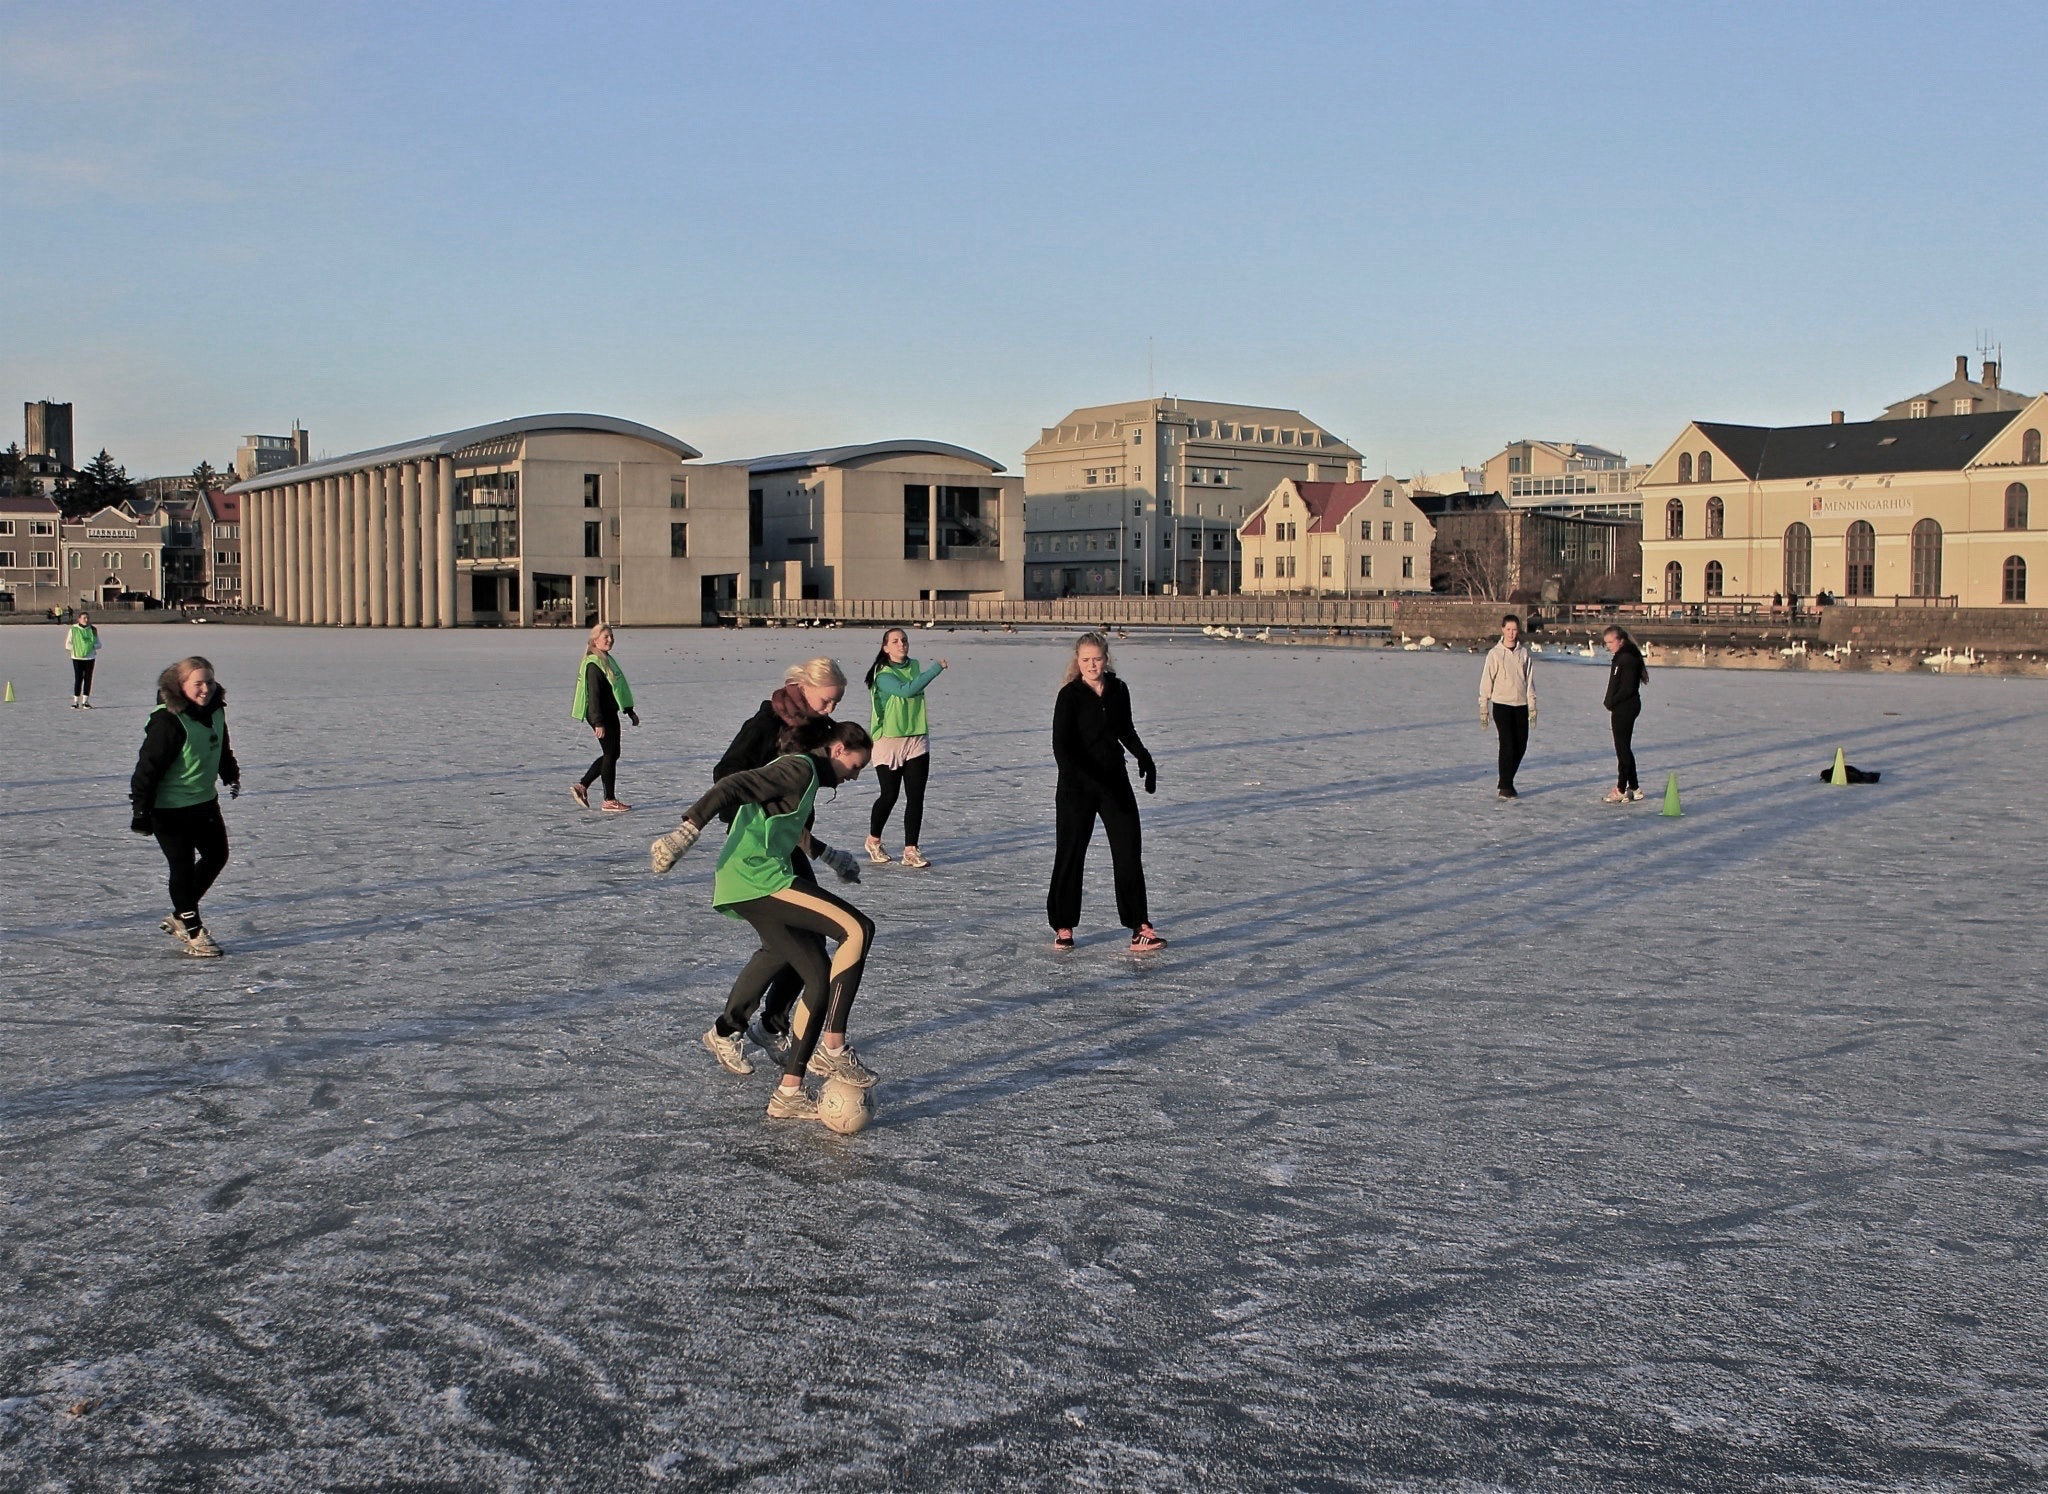 Girls playing football on an icy pond in front of Reykjavík city hall